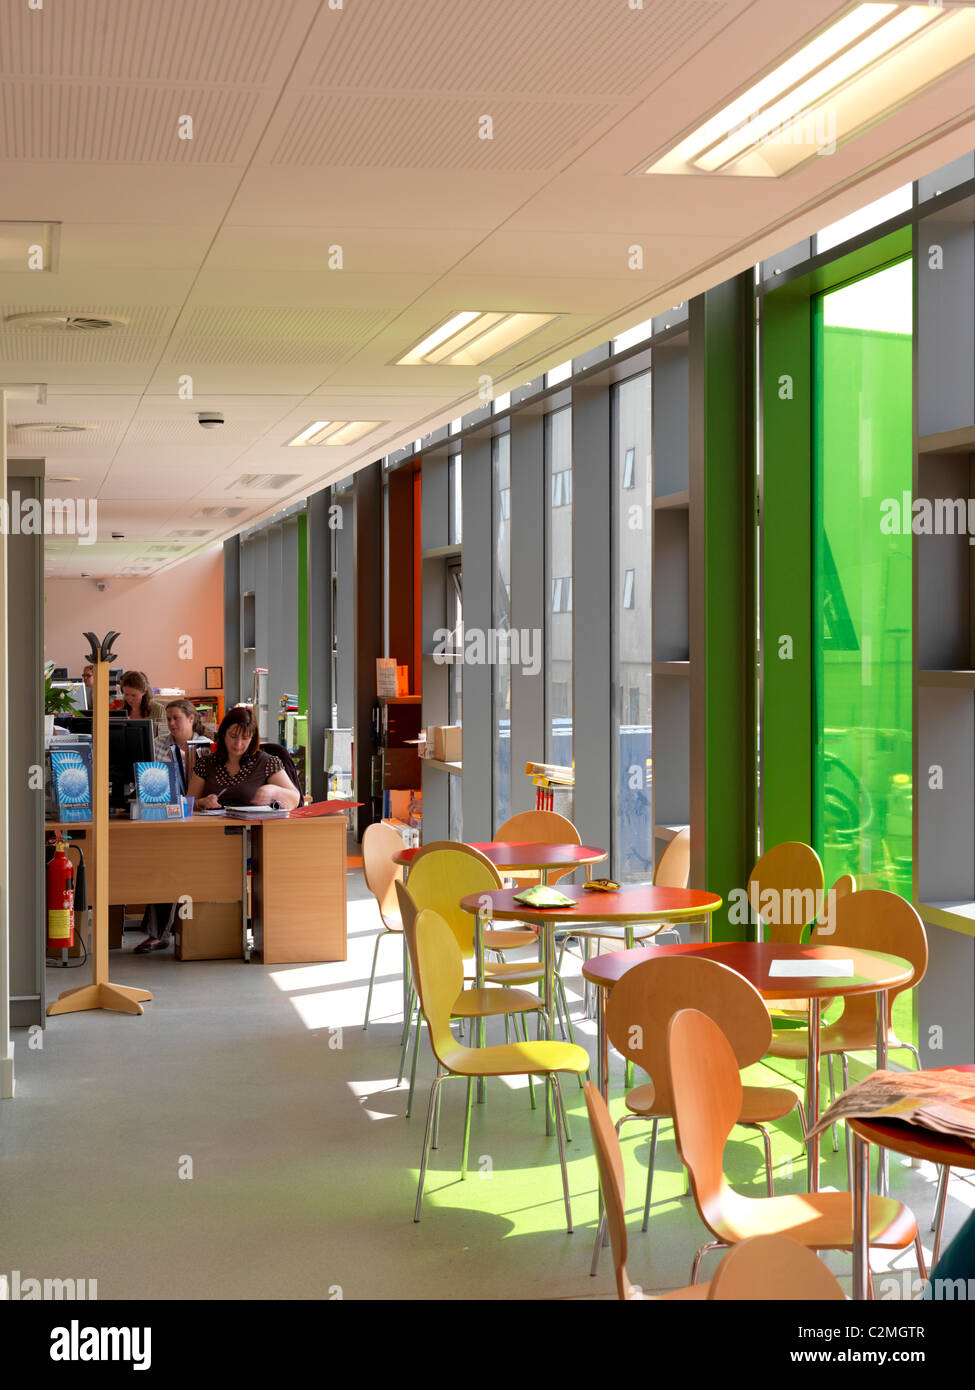 Herefordshire College of Technology, Hereford Learning Village, Hereford - Stock Image